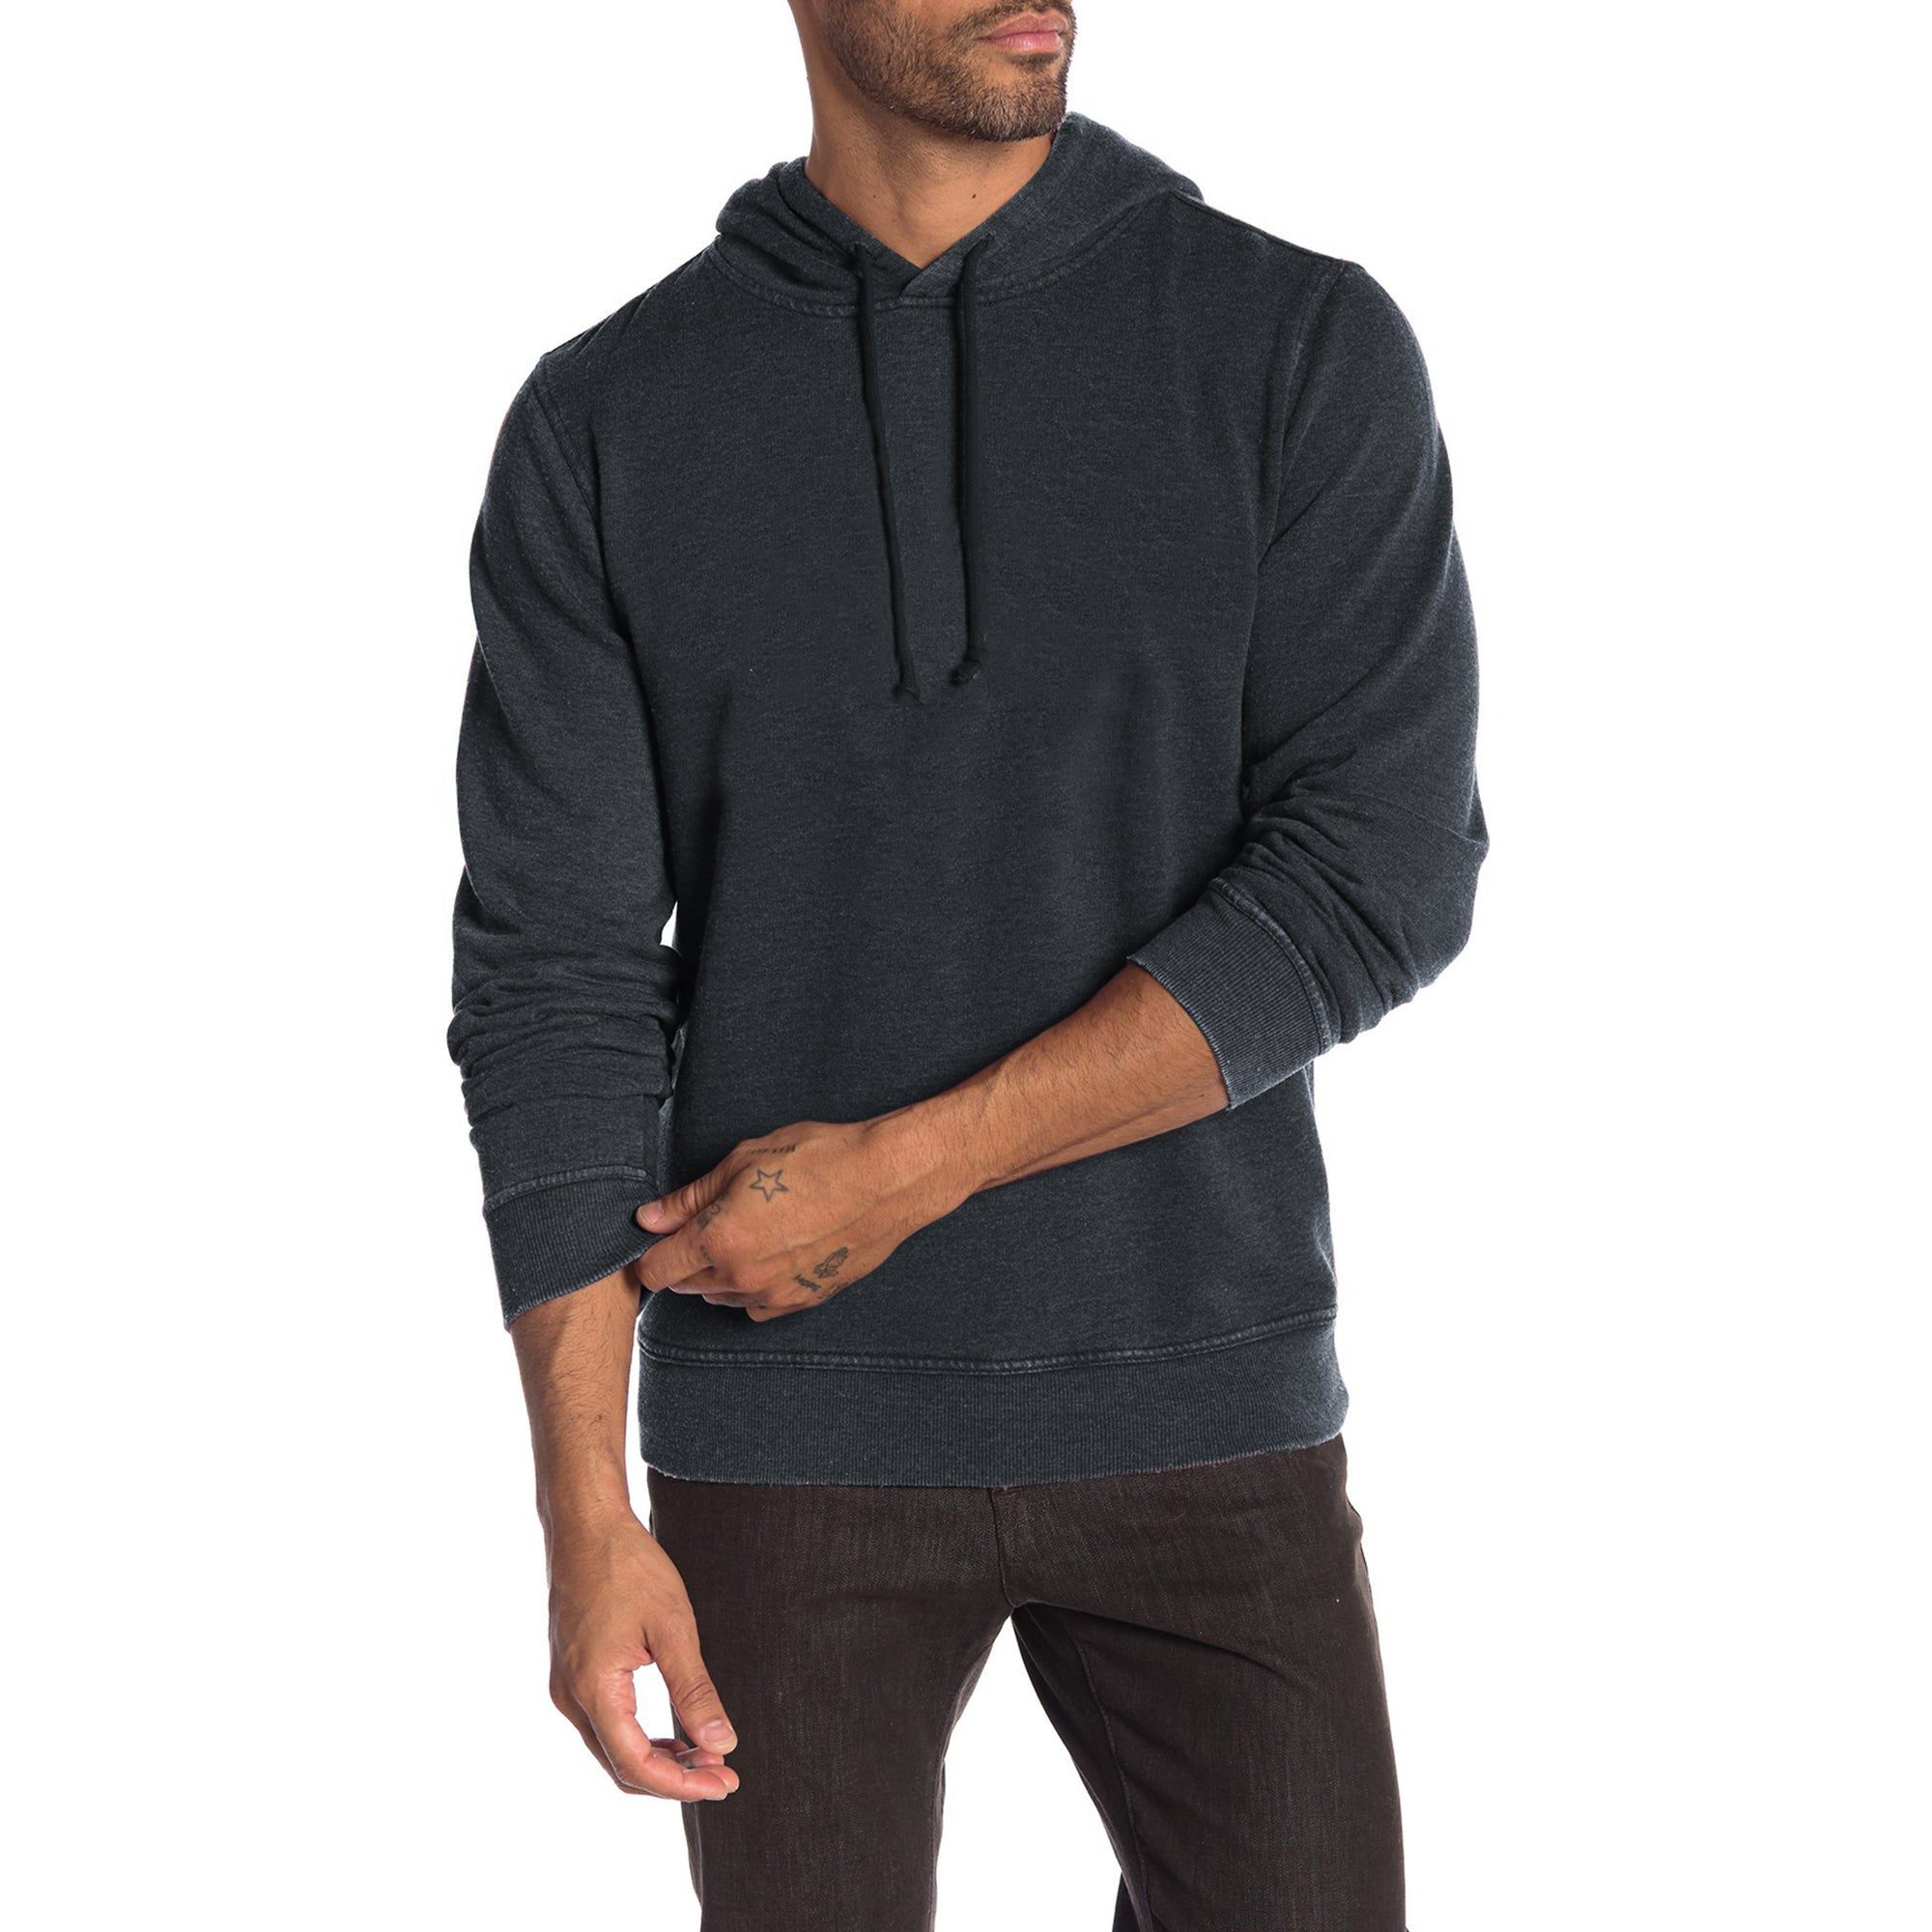 brandsego - F&F Fleece Pullover Burnout Wash Hoodie For Men-Charcoal-BE6534